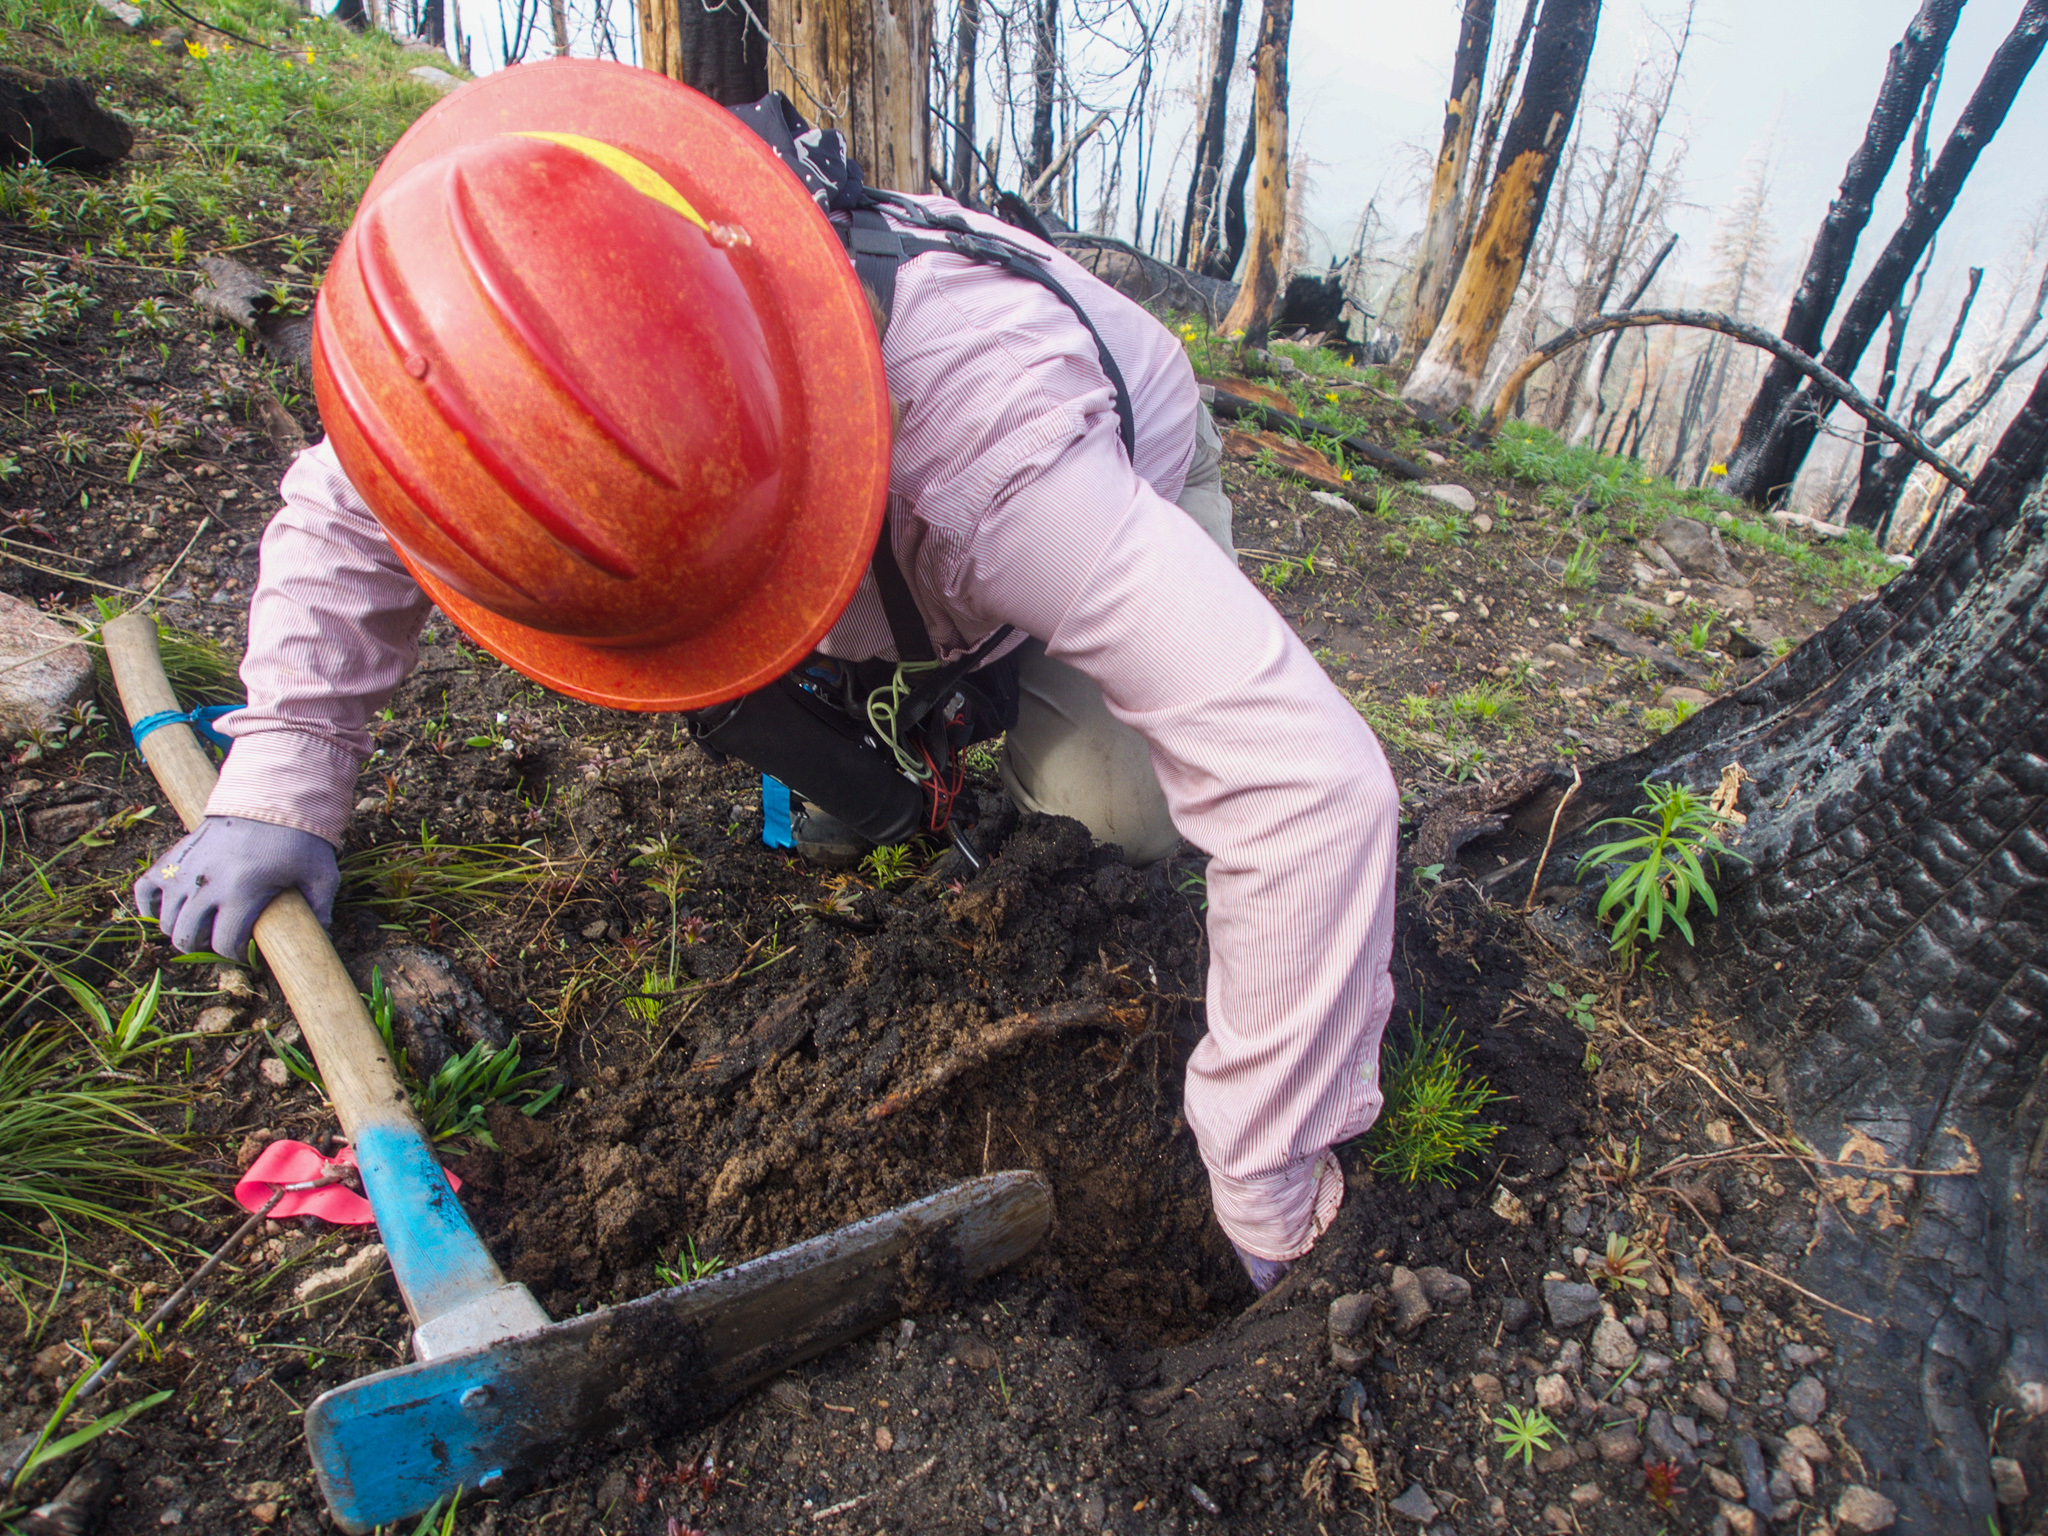 Forest technician Jes Falvey inspects a rust-resistant seedling at the site of a recent forest fire—Custer-Gallatin National Forest, Montana.